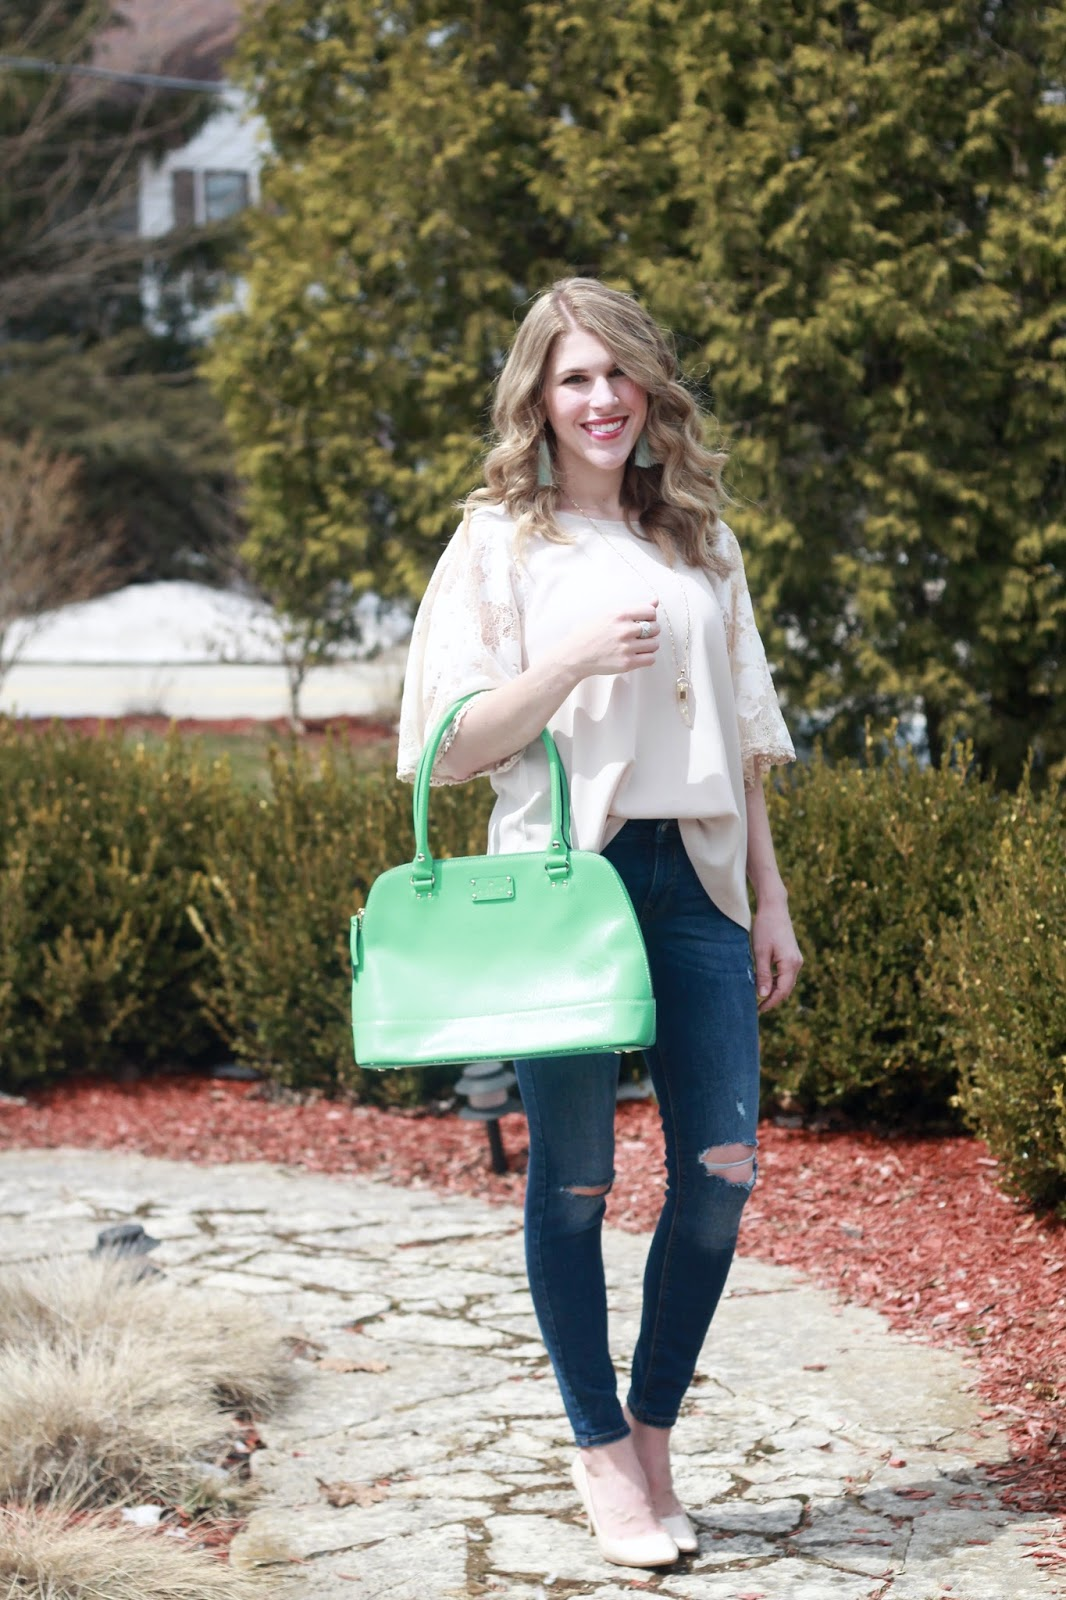 PinkBlush taupe lace sleeve blouse, distressed jeans, nude heels, green Kate Spade bag, mint tassel earrings